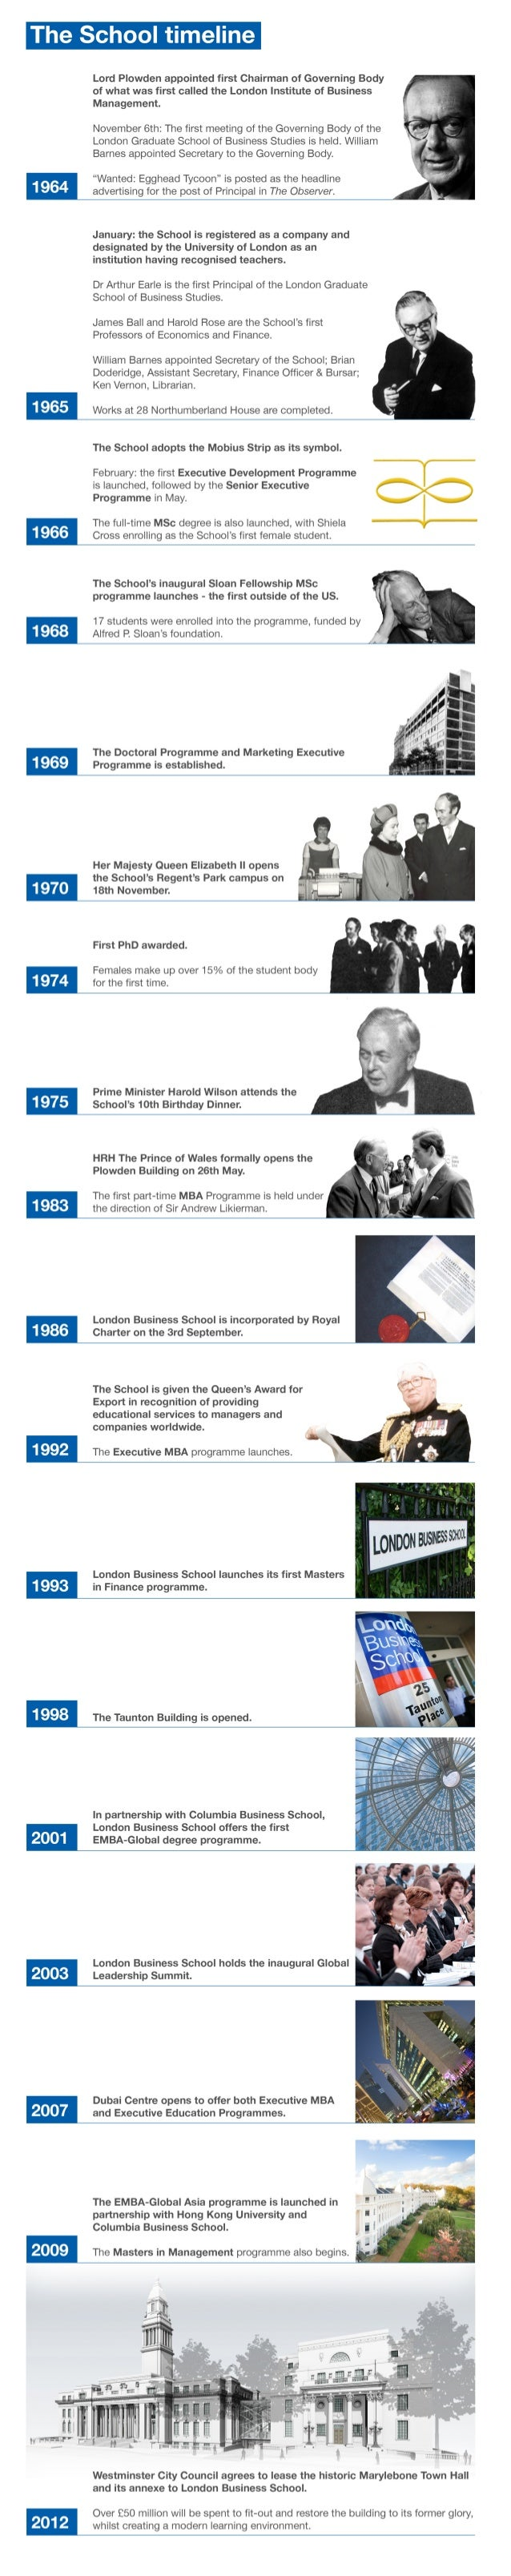 The history of London Business School